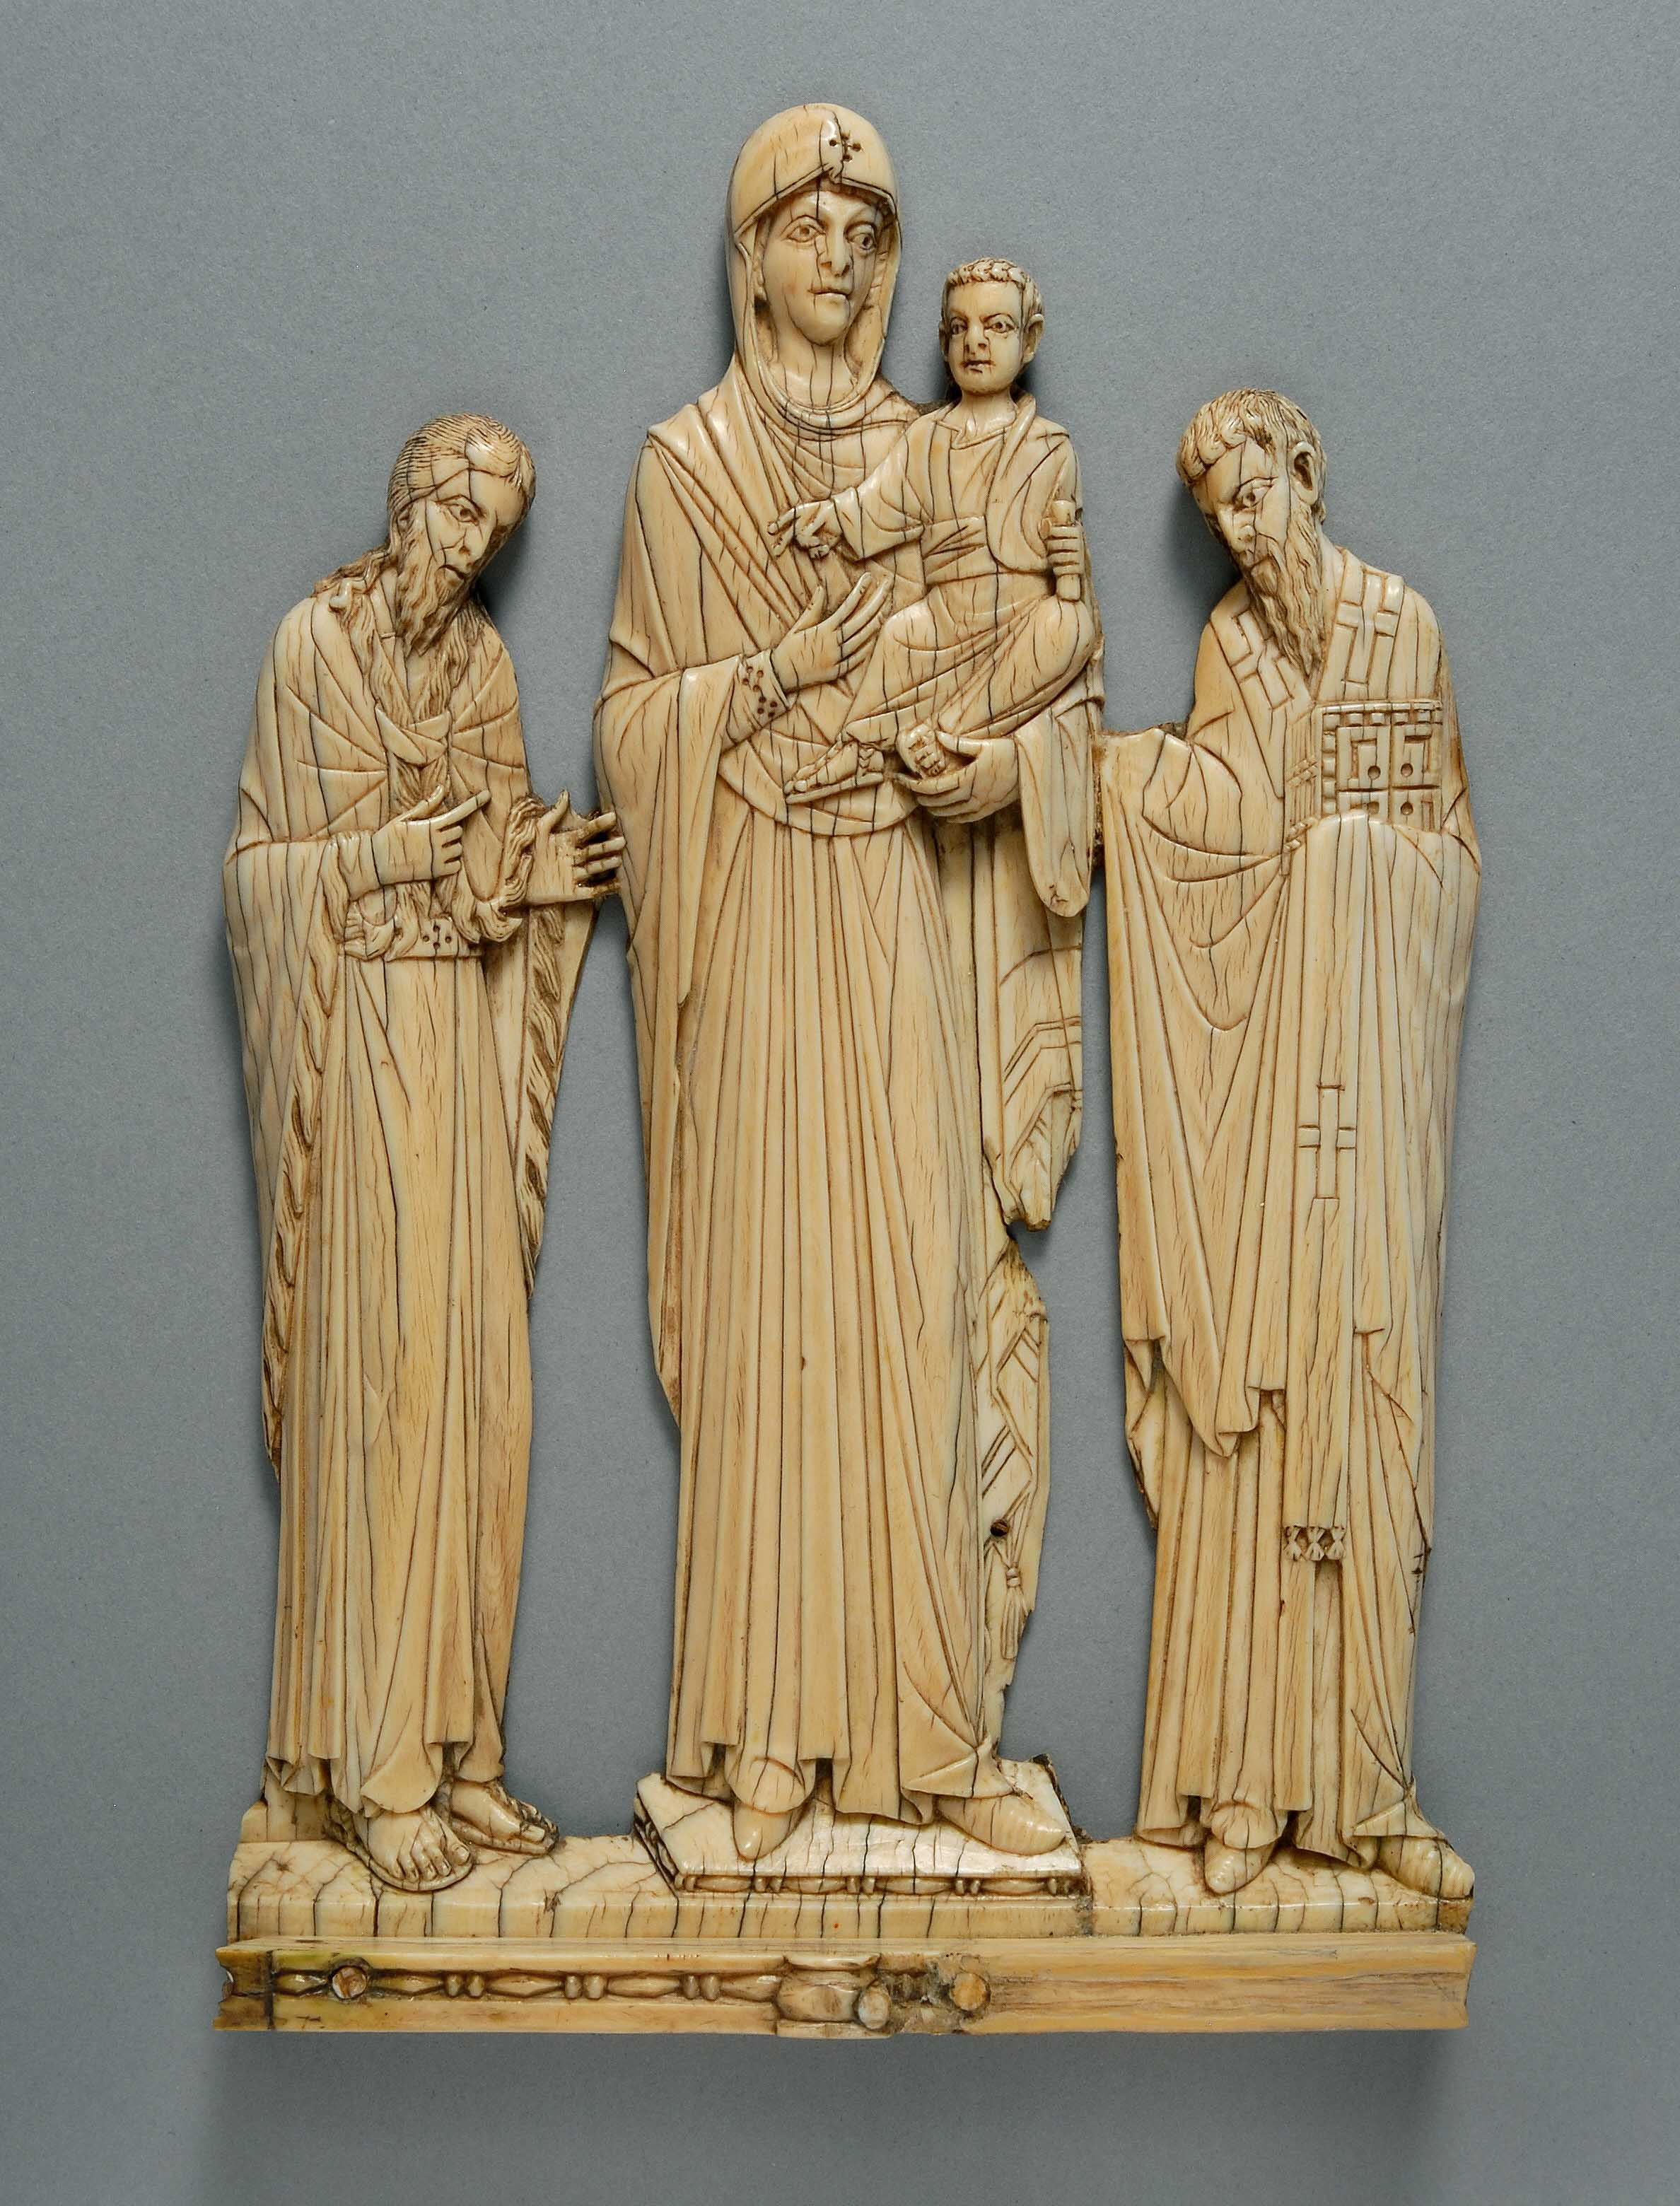 BZ.1939.8, Virgin Hodegetria, St. John the Baptist, and St. Basil from a Plaque